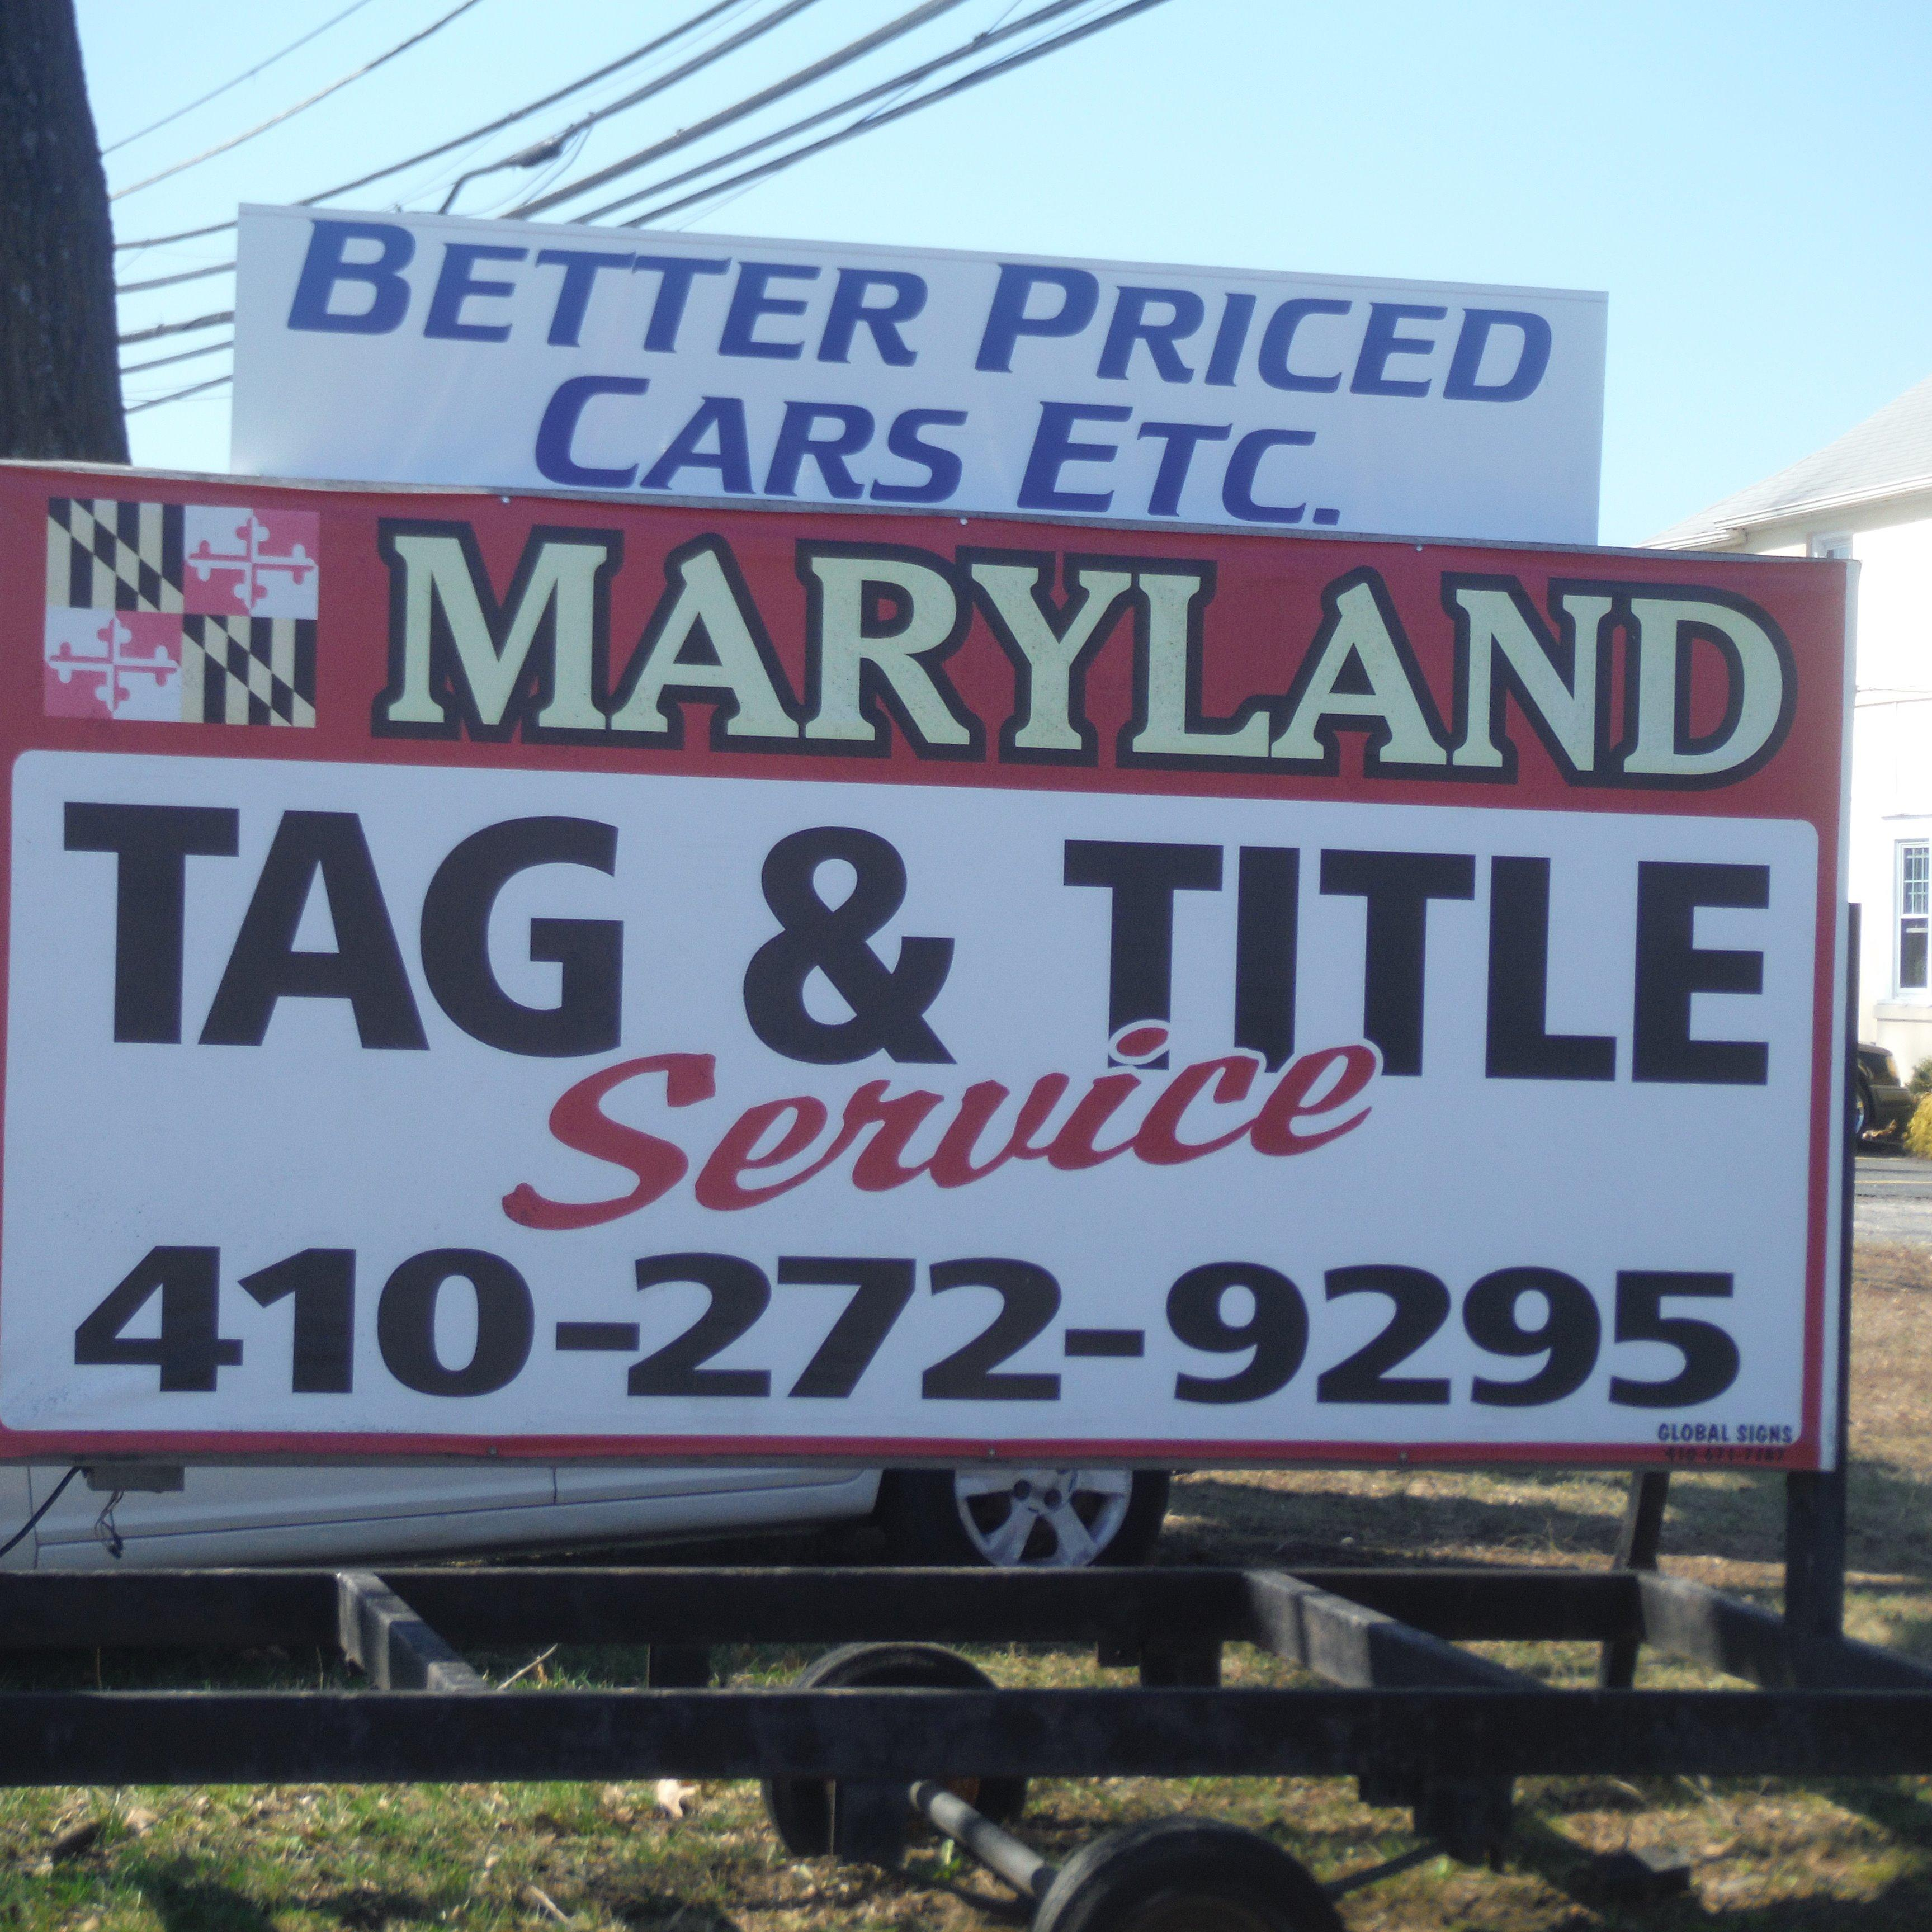 Maryland Tag & Title Services - Aberdeen, MD - Auto Dealers